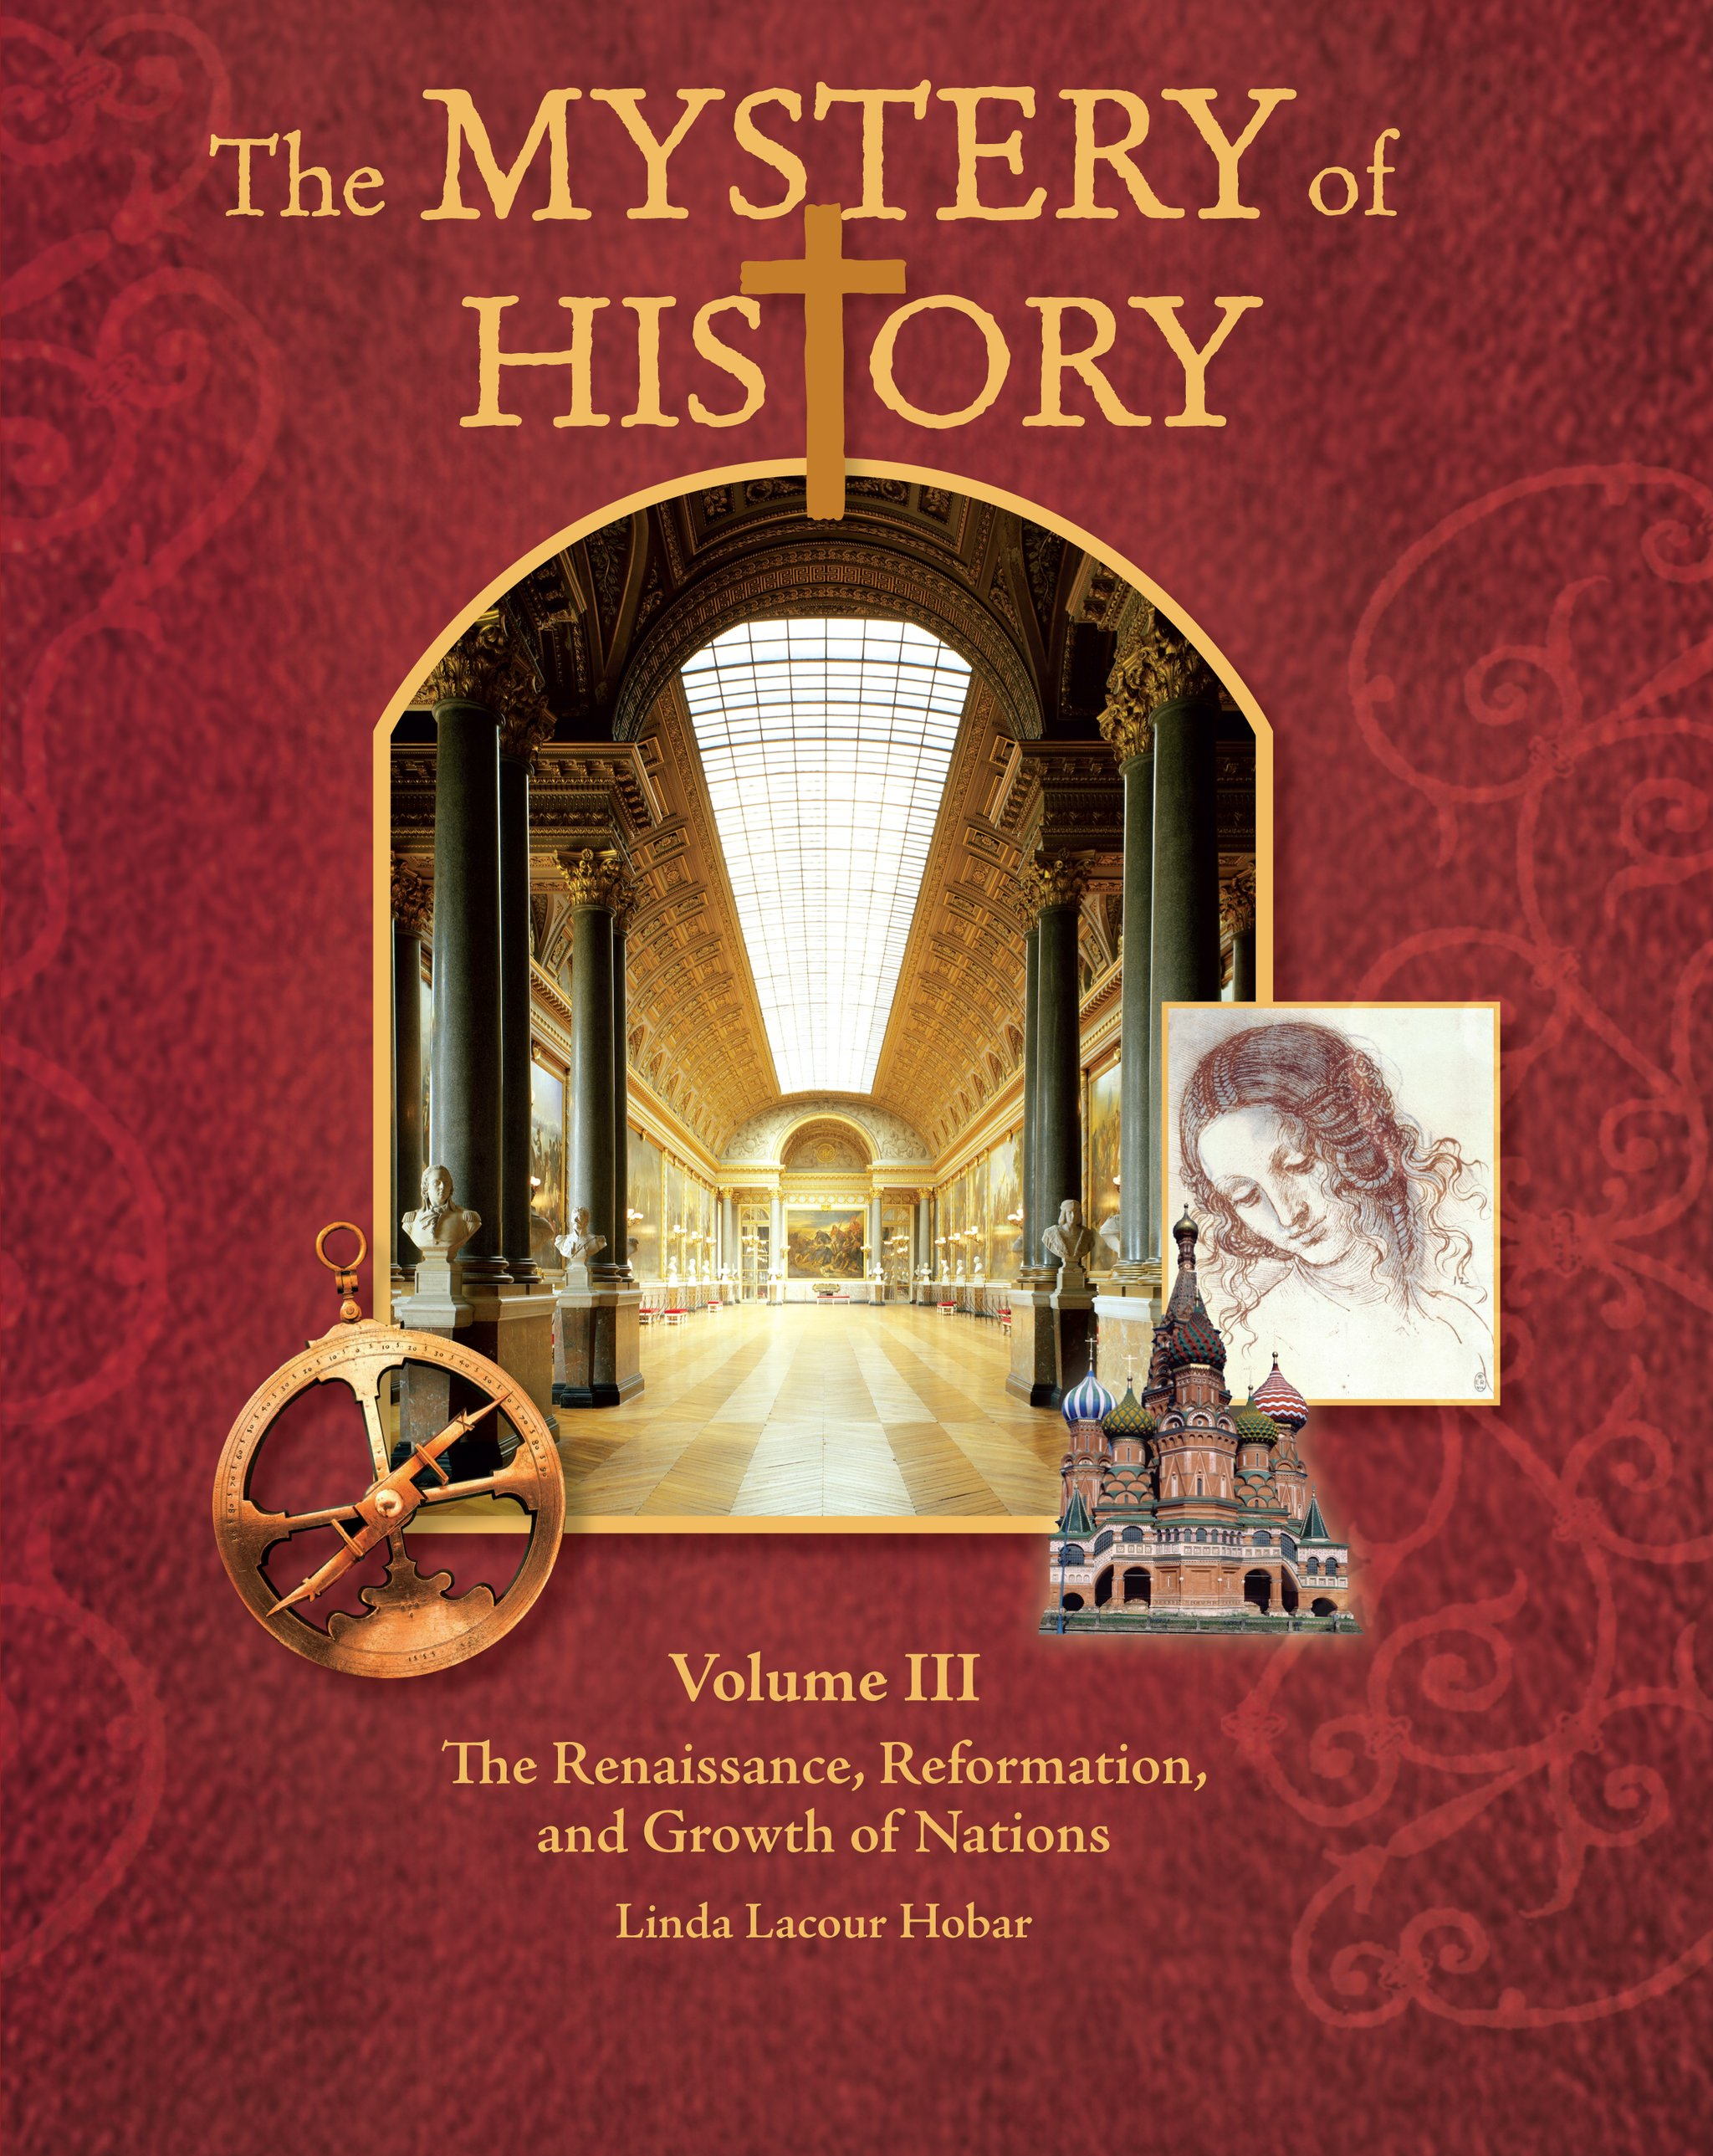 The Mystery of History Volume 3 (VOLUME 3) [Hardcover] by LINDA LCOUR HOBAR